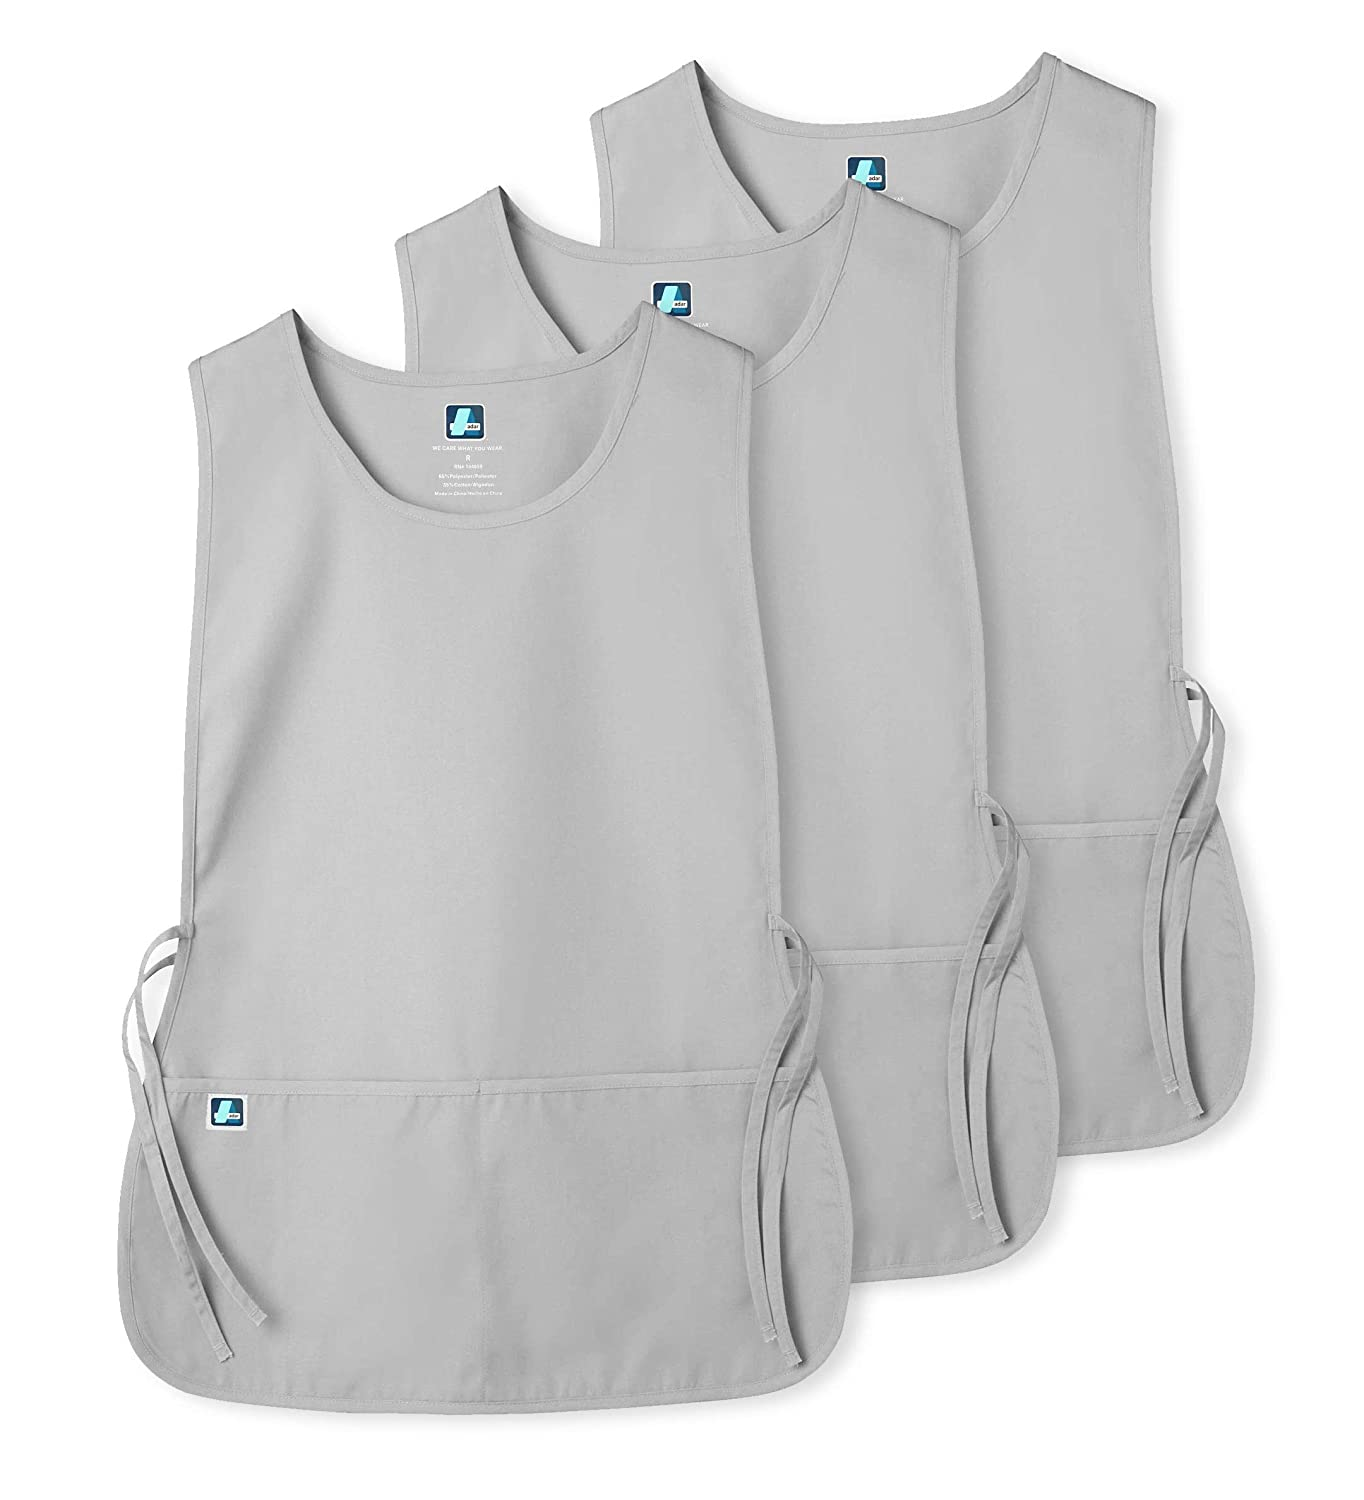 7023 RED Adar Unisex Cobbler Apron R Available in 30 Colors 3 Pack with 2 Pockets // Adjustable Ties